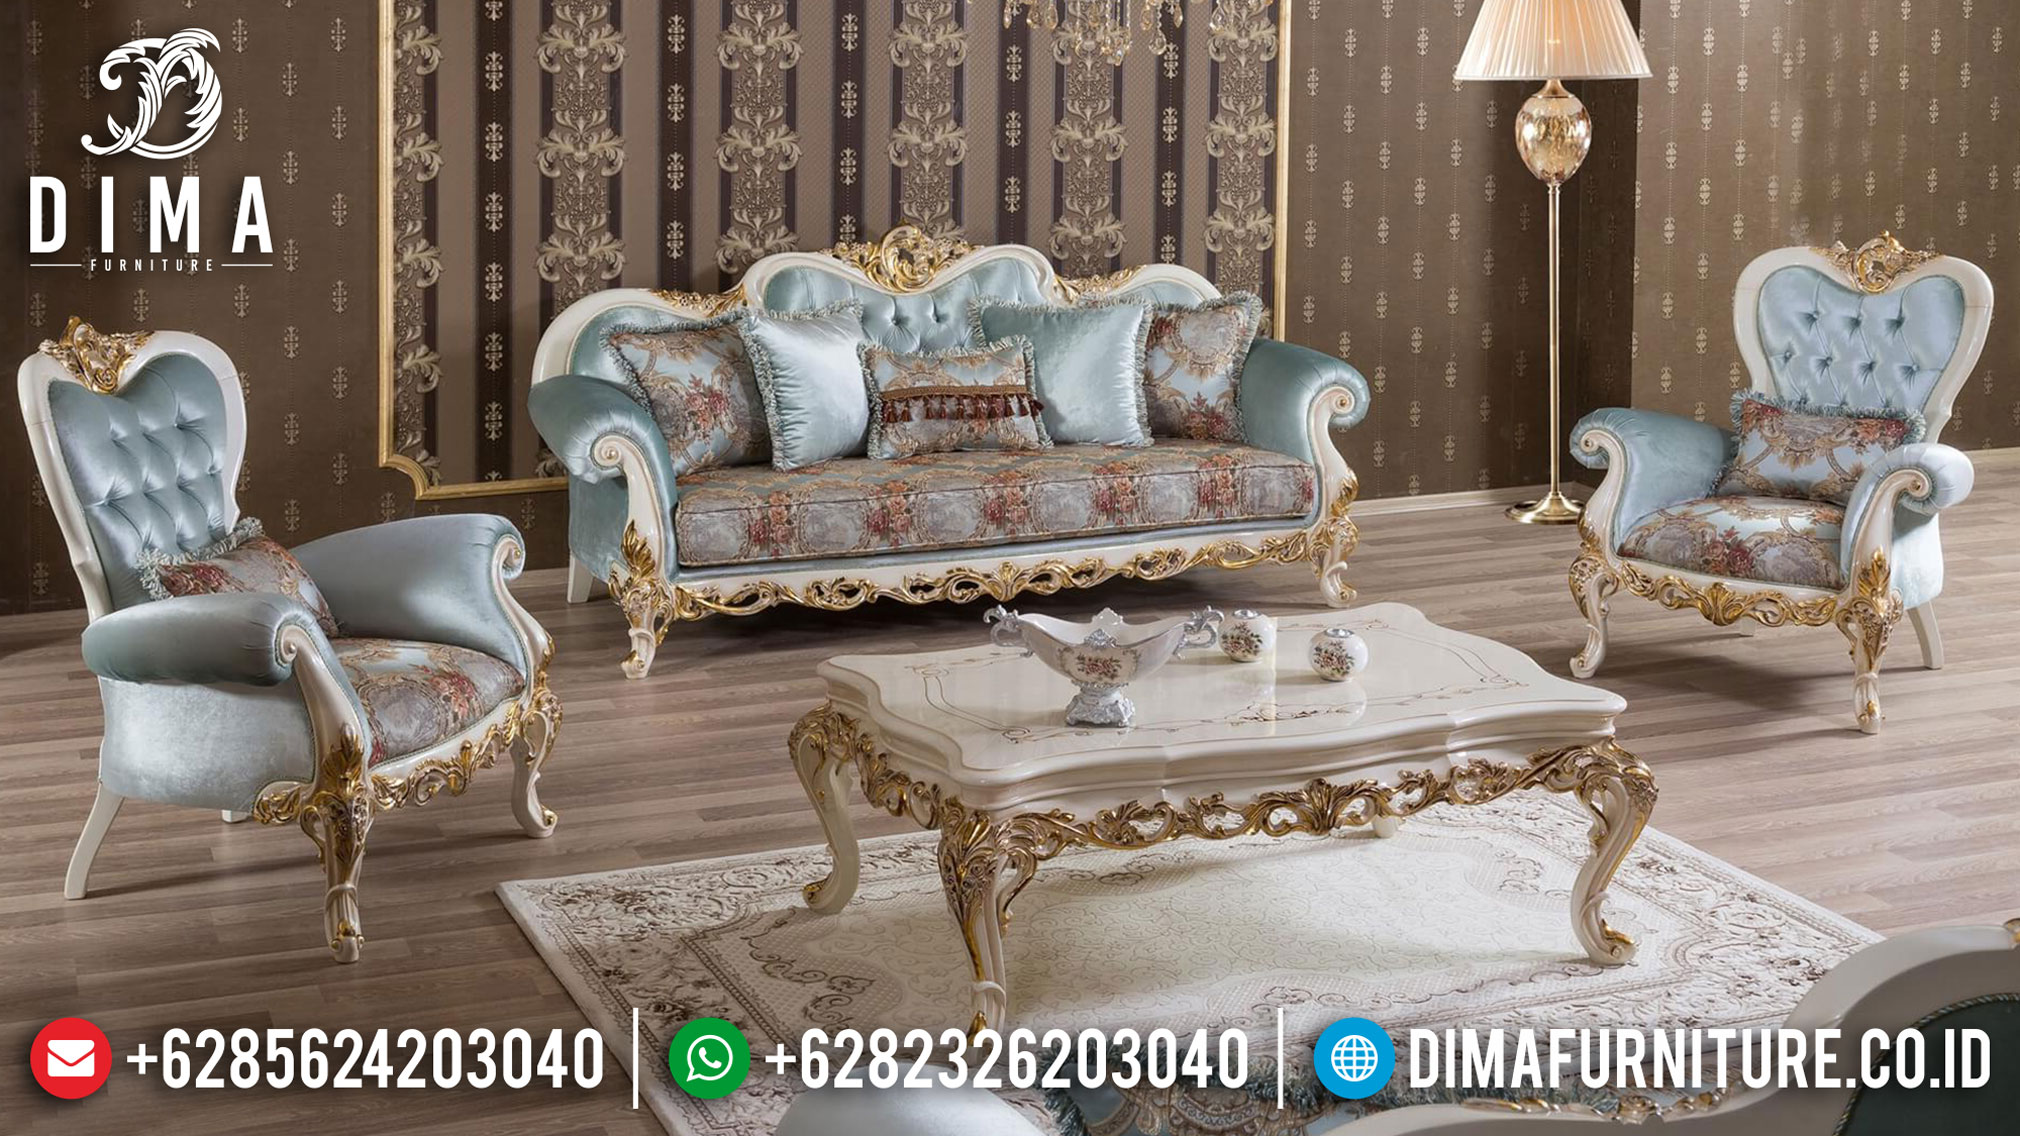 Sofa Tamu Ukiran Jepara Luxury Art Deco Classic Combination TTJ-0985